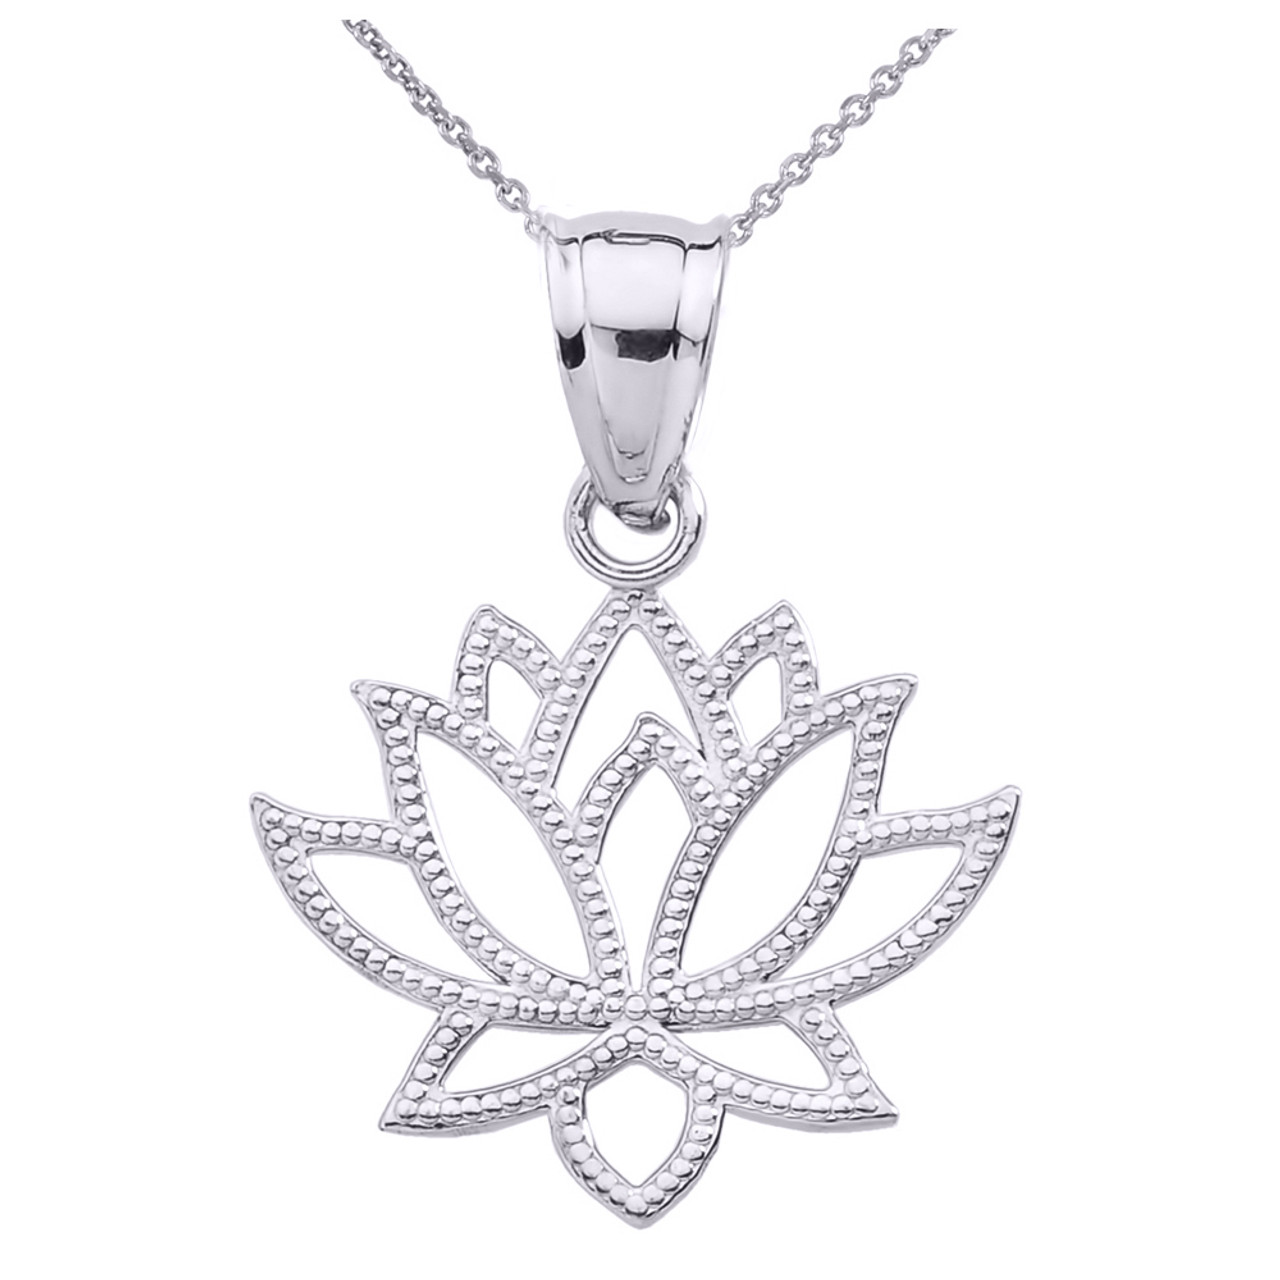 sy photo p necklace two silver blooms pendant lotus jewelry htm enlarge satya